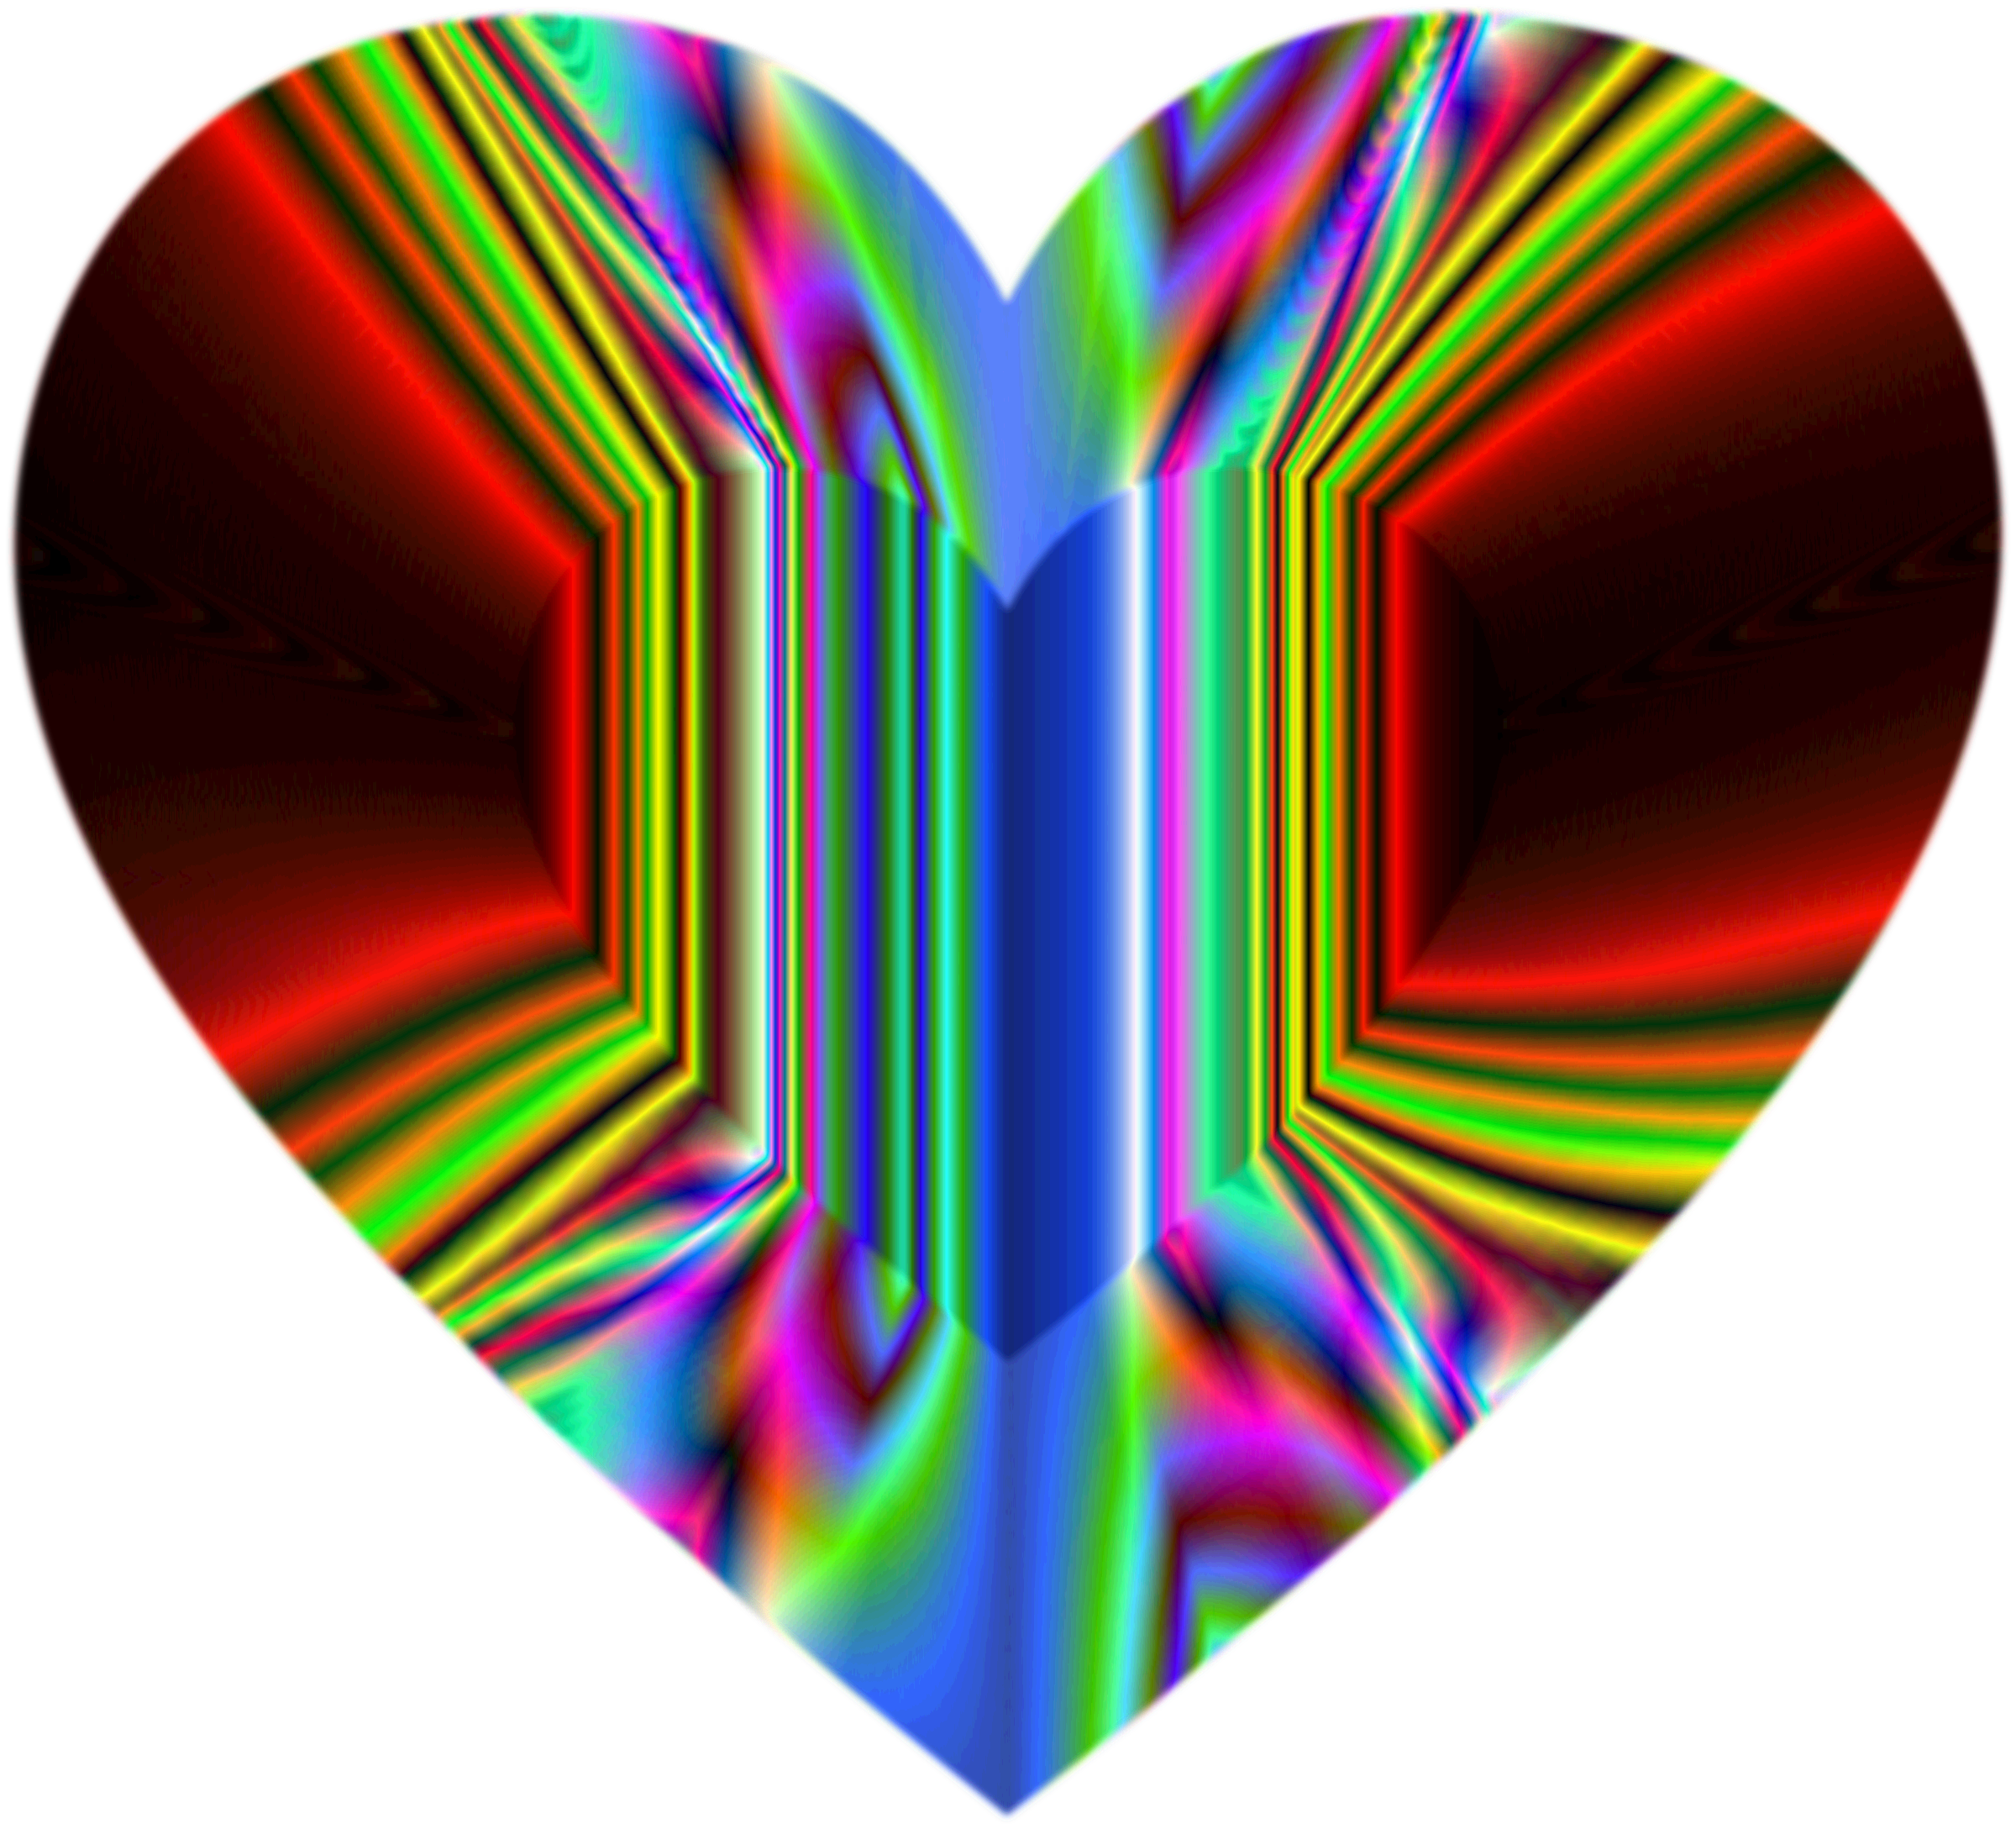 Colorful Refraction Heart Psychedelic 2 by GDJ